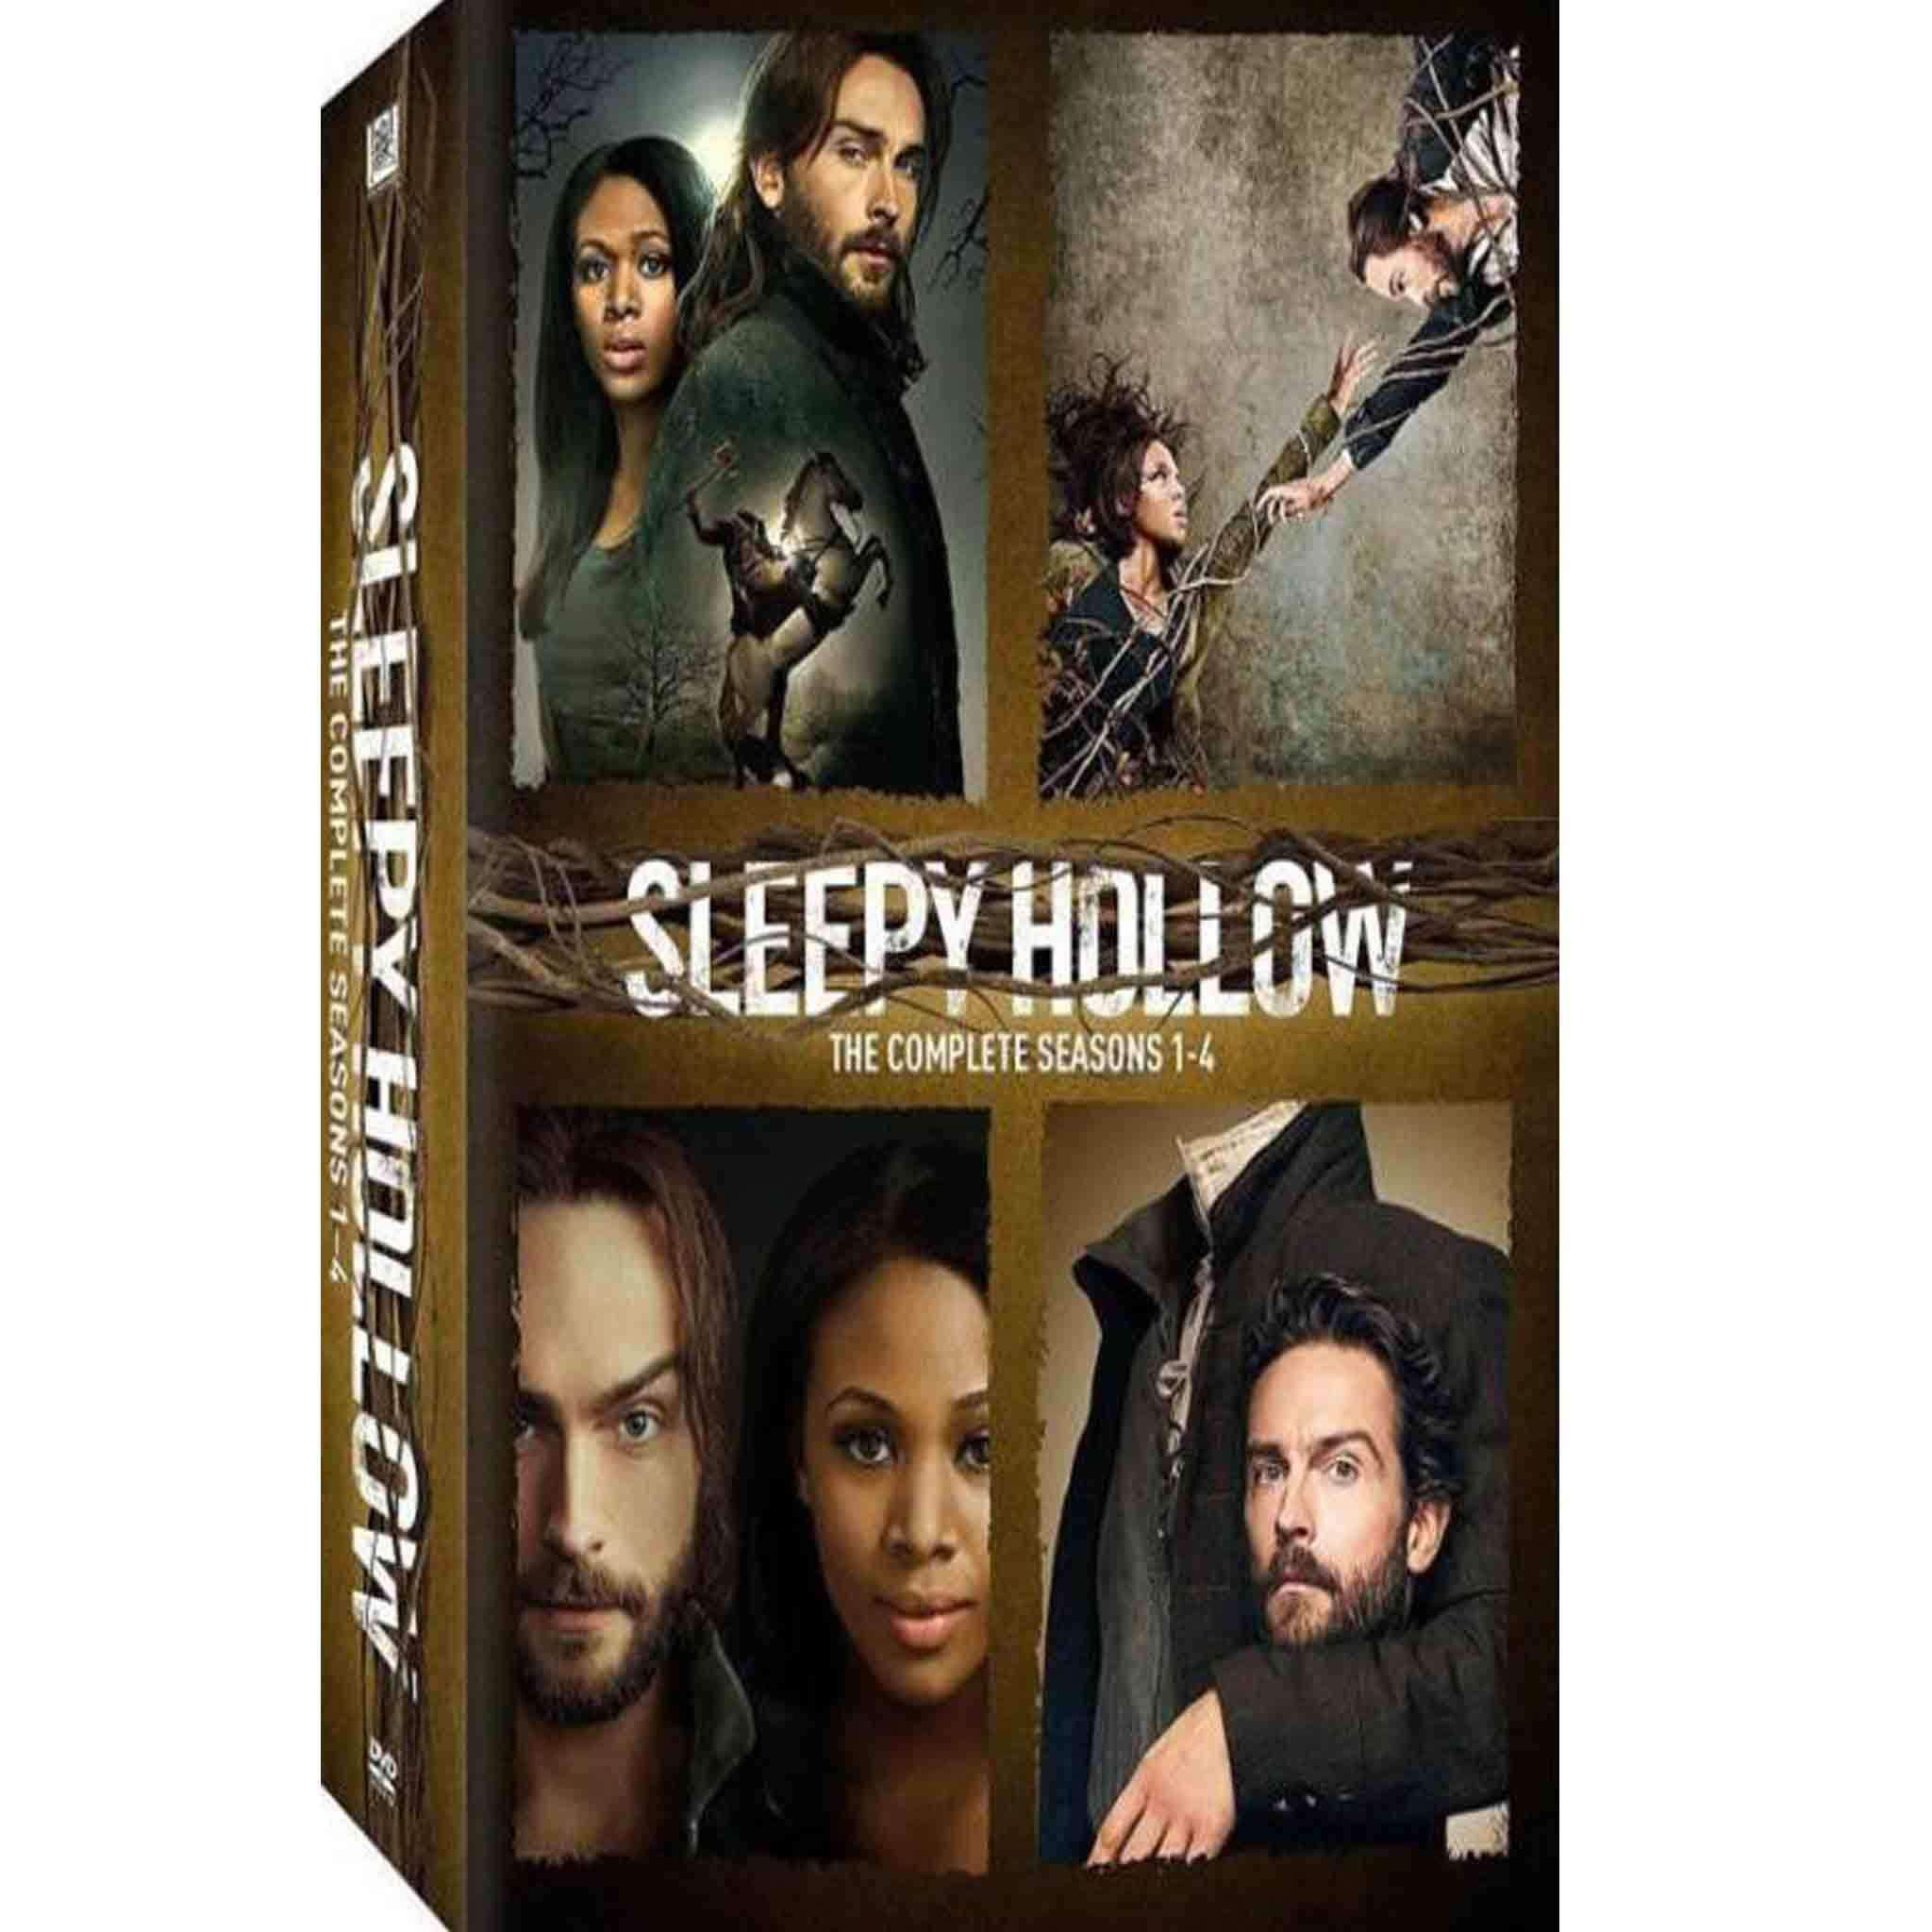 Sleepy Hollow DVD Complete Series Box Set 20th Century Fox DVDs & Blu-ray Discs > DVDs > Box Sets